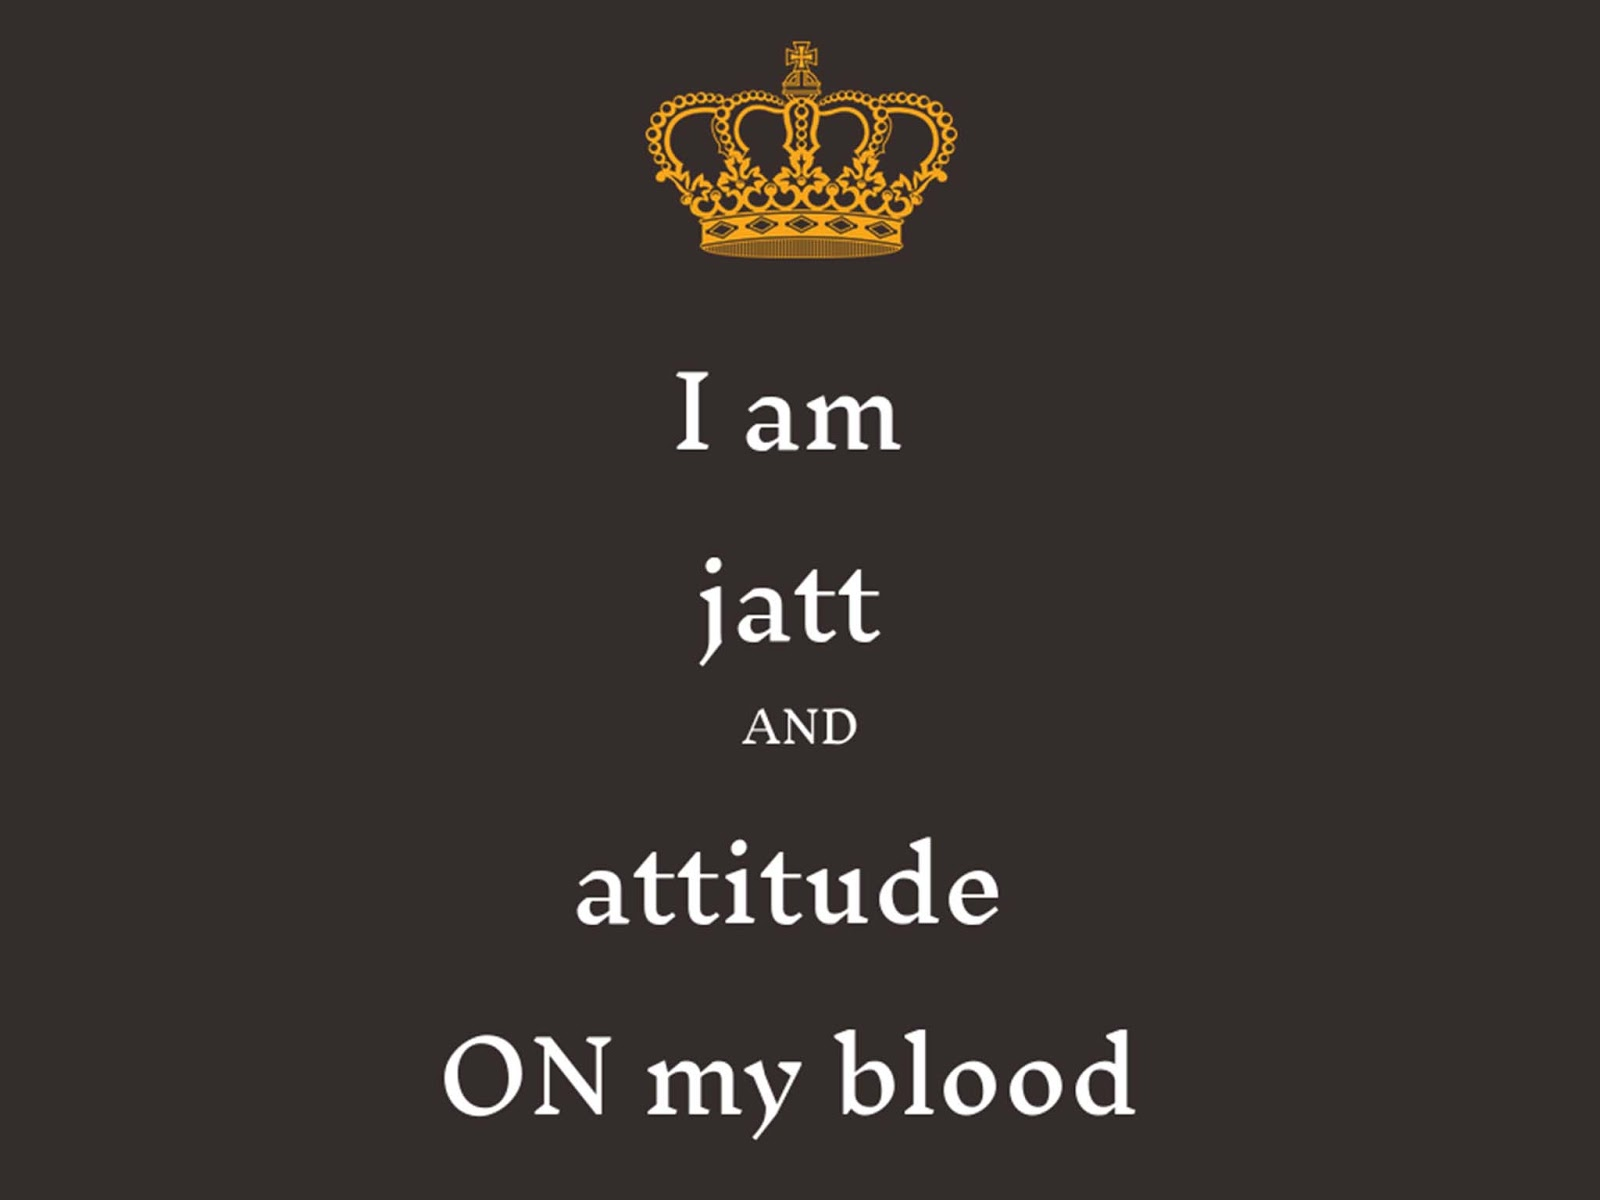 Whatsapp DP Attitude jatt